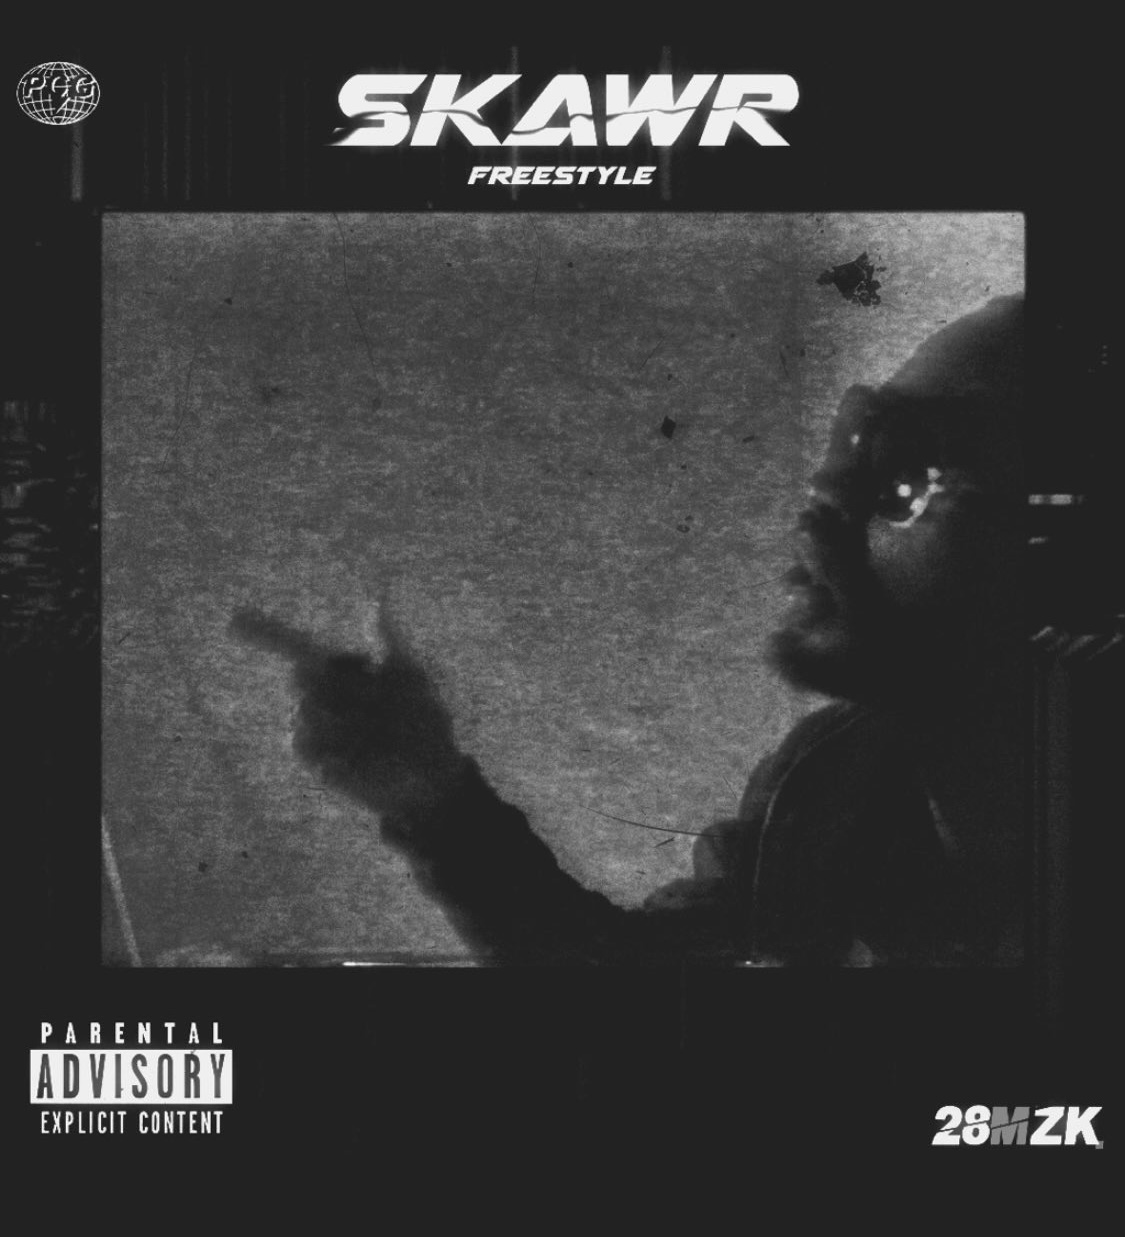 Upcoming: Nabz - SKAWR Freestyle